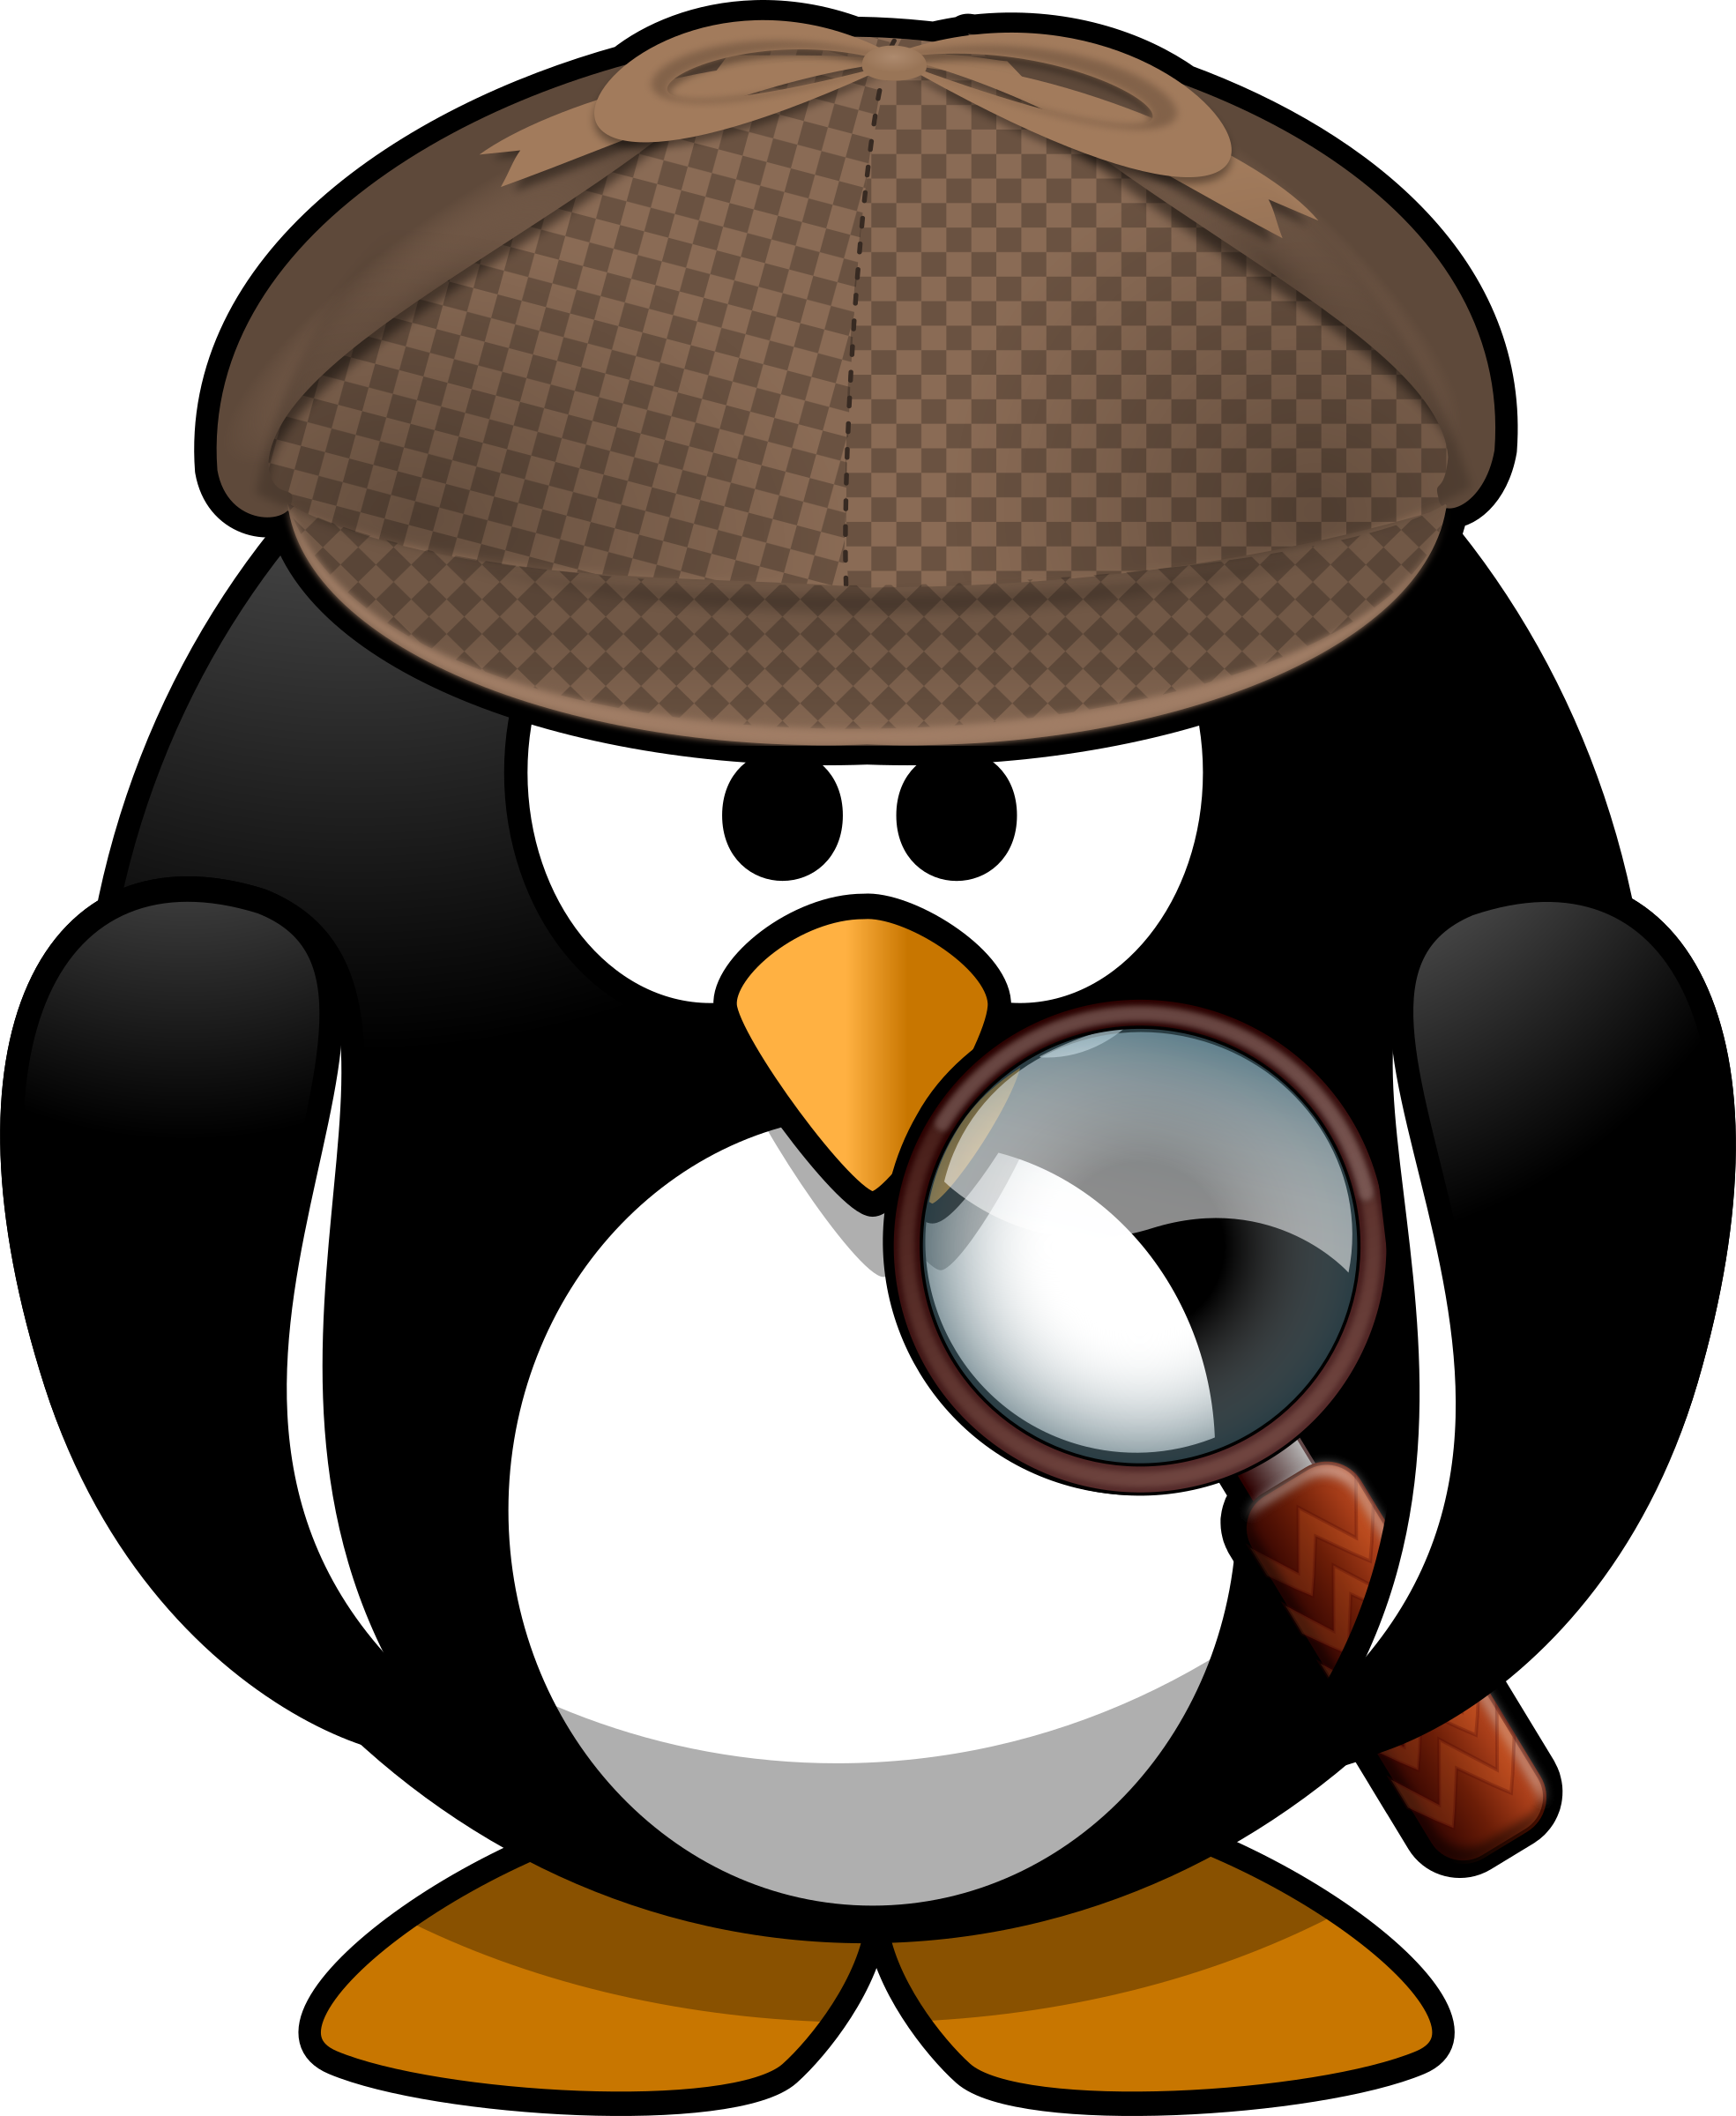 Detective clipart interview. Sleuth penguin big image